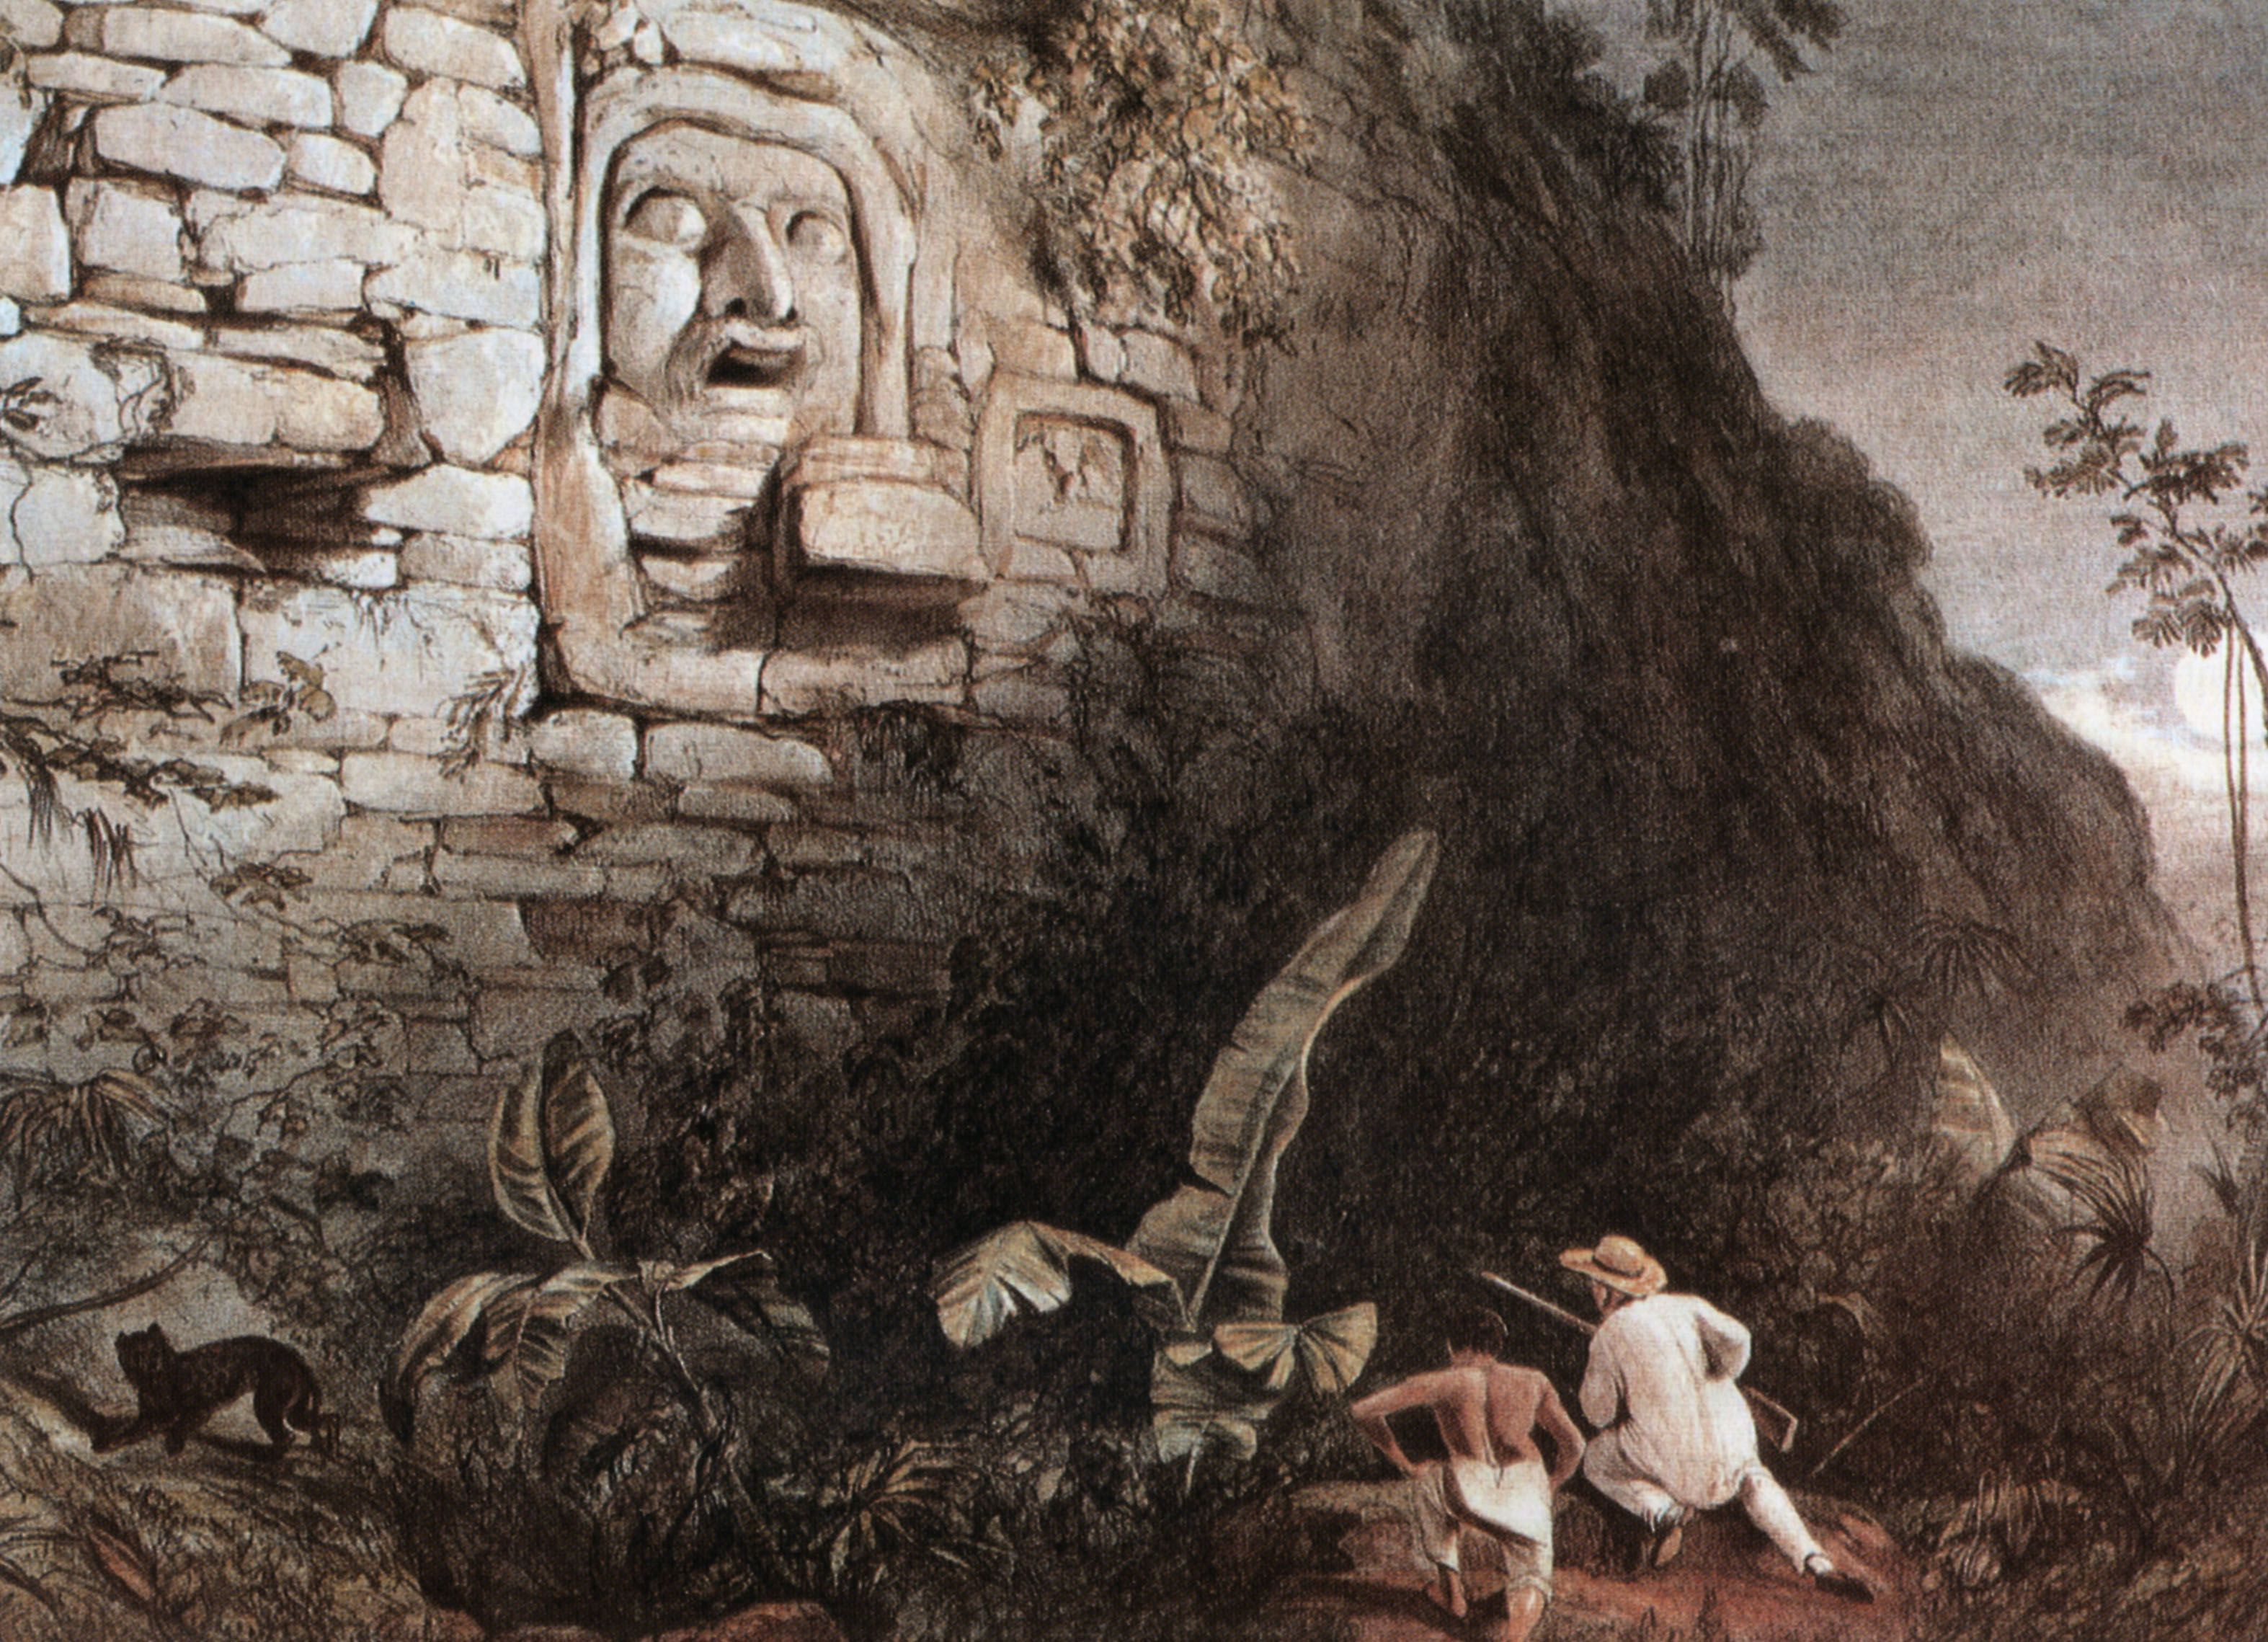 Maya Sculpture of Itzamna, lithography by Frederick Catherwood in 1841 : it is the only picture of this stucco mask (2m high).